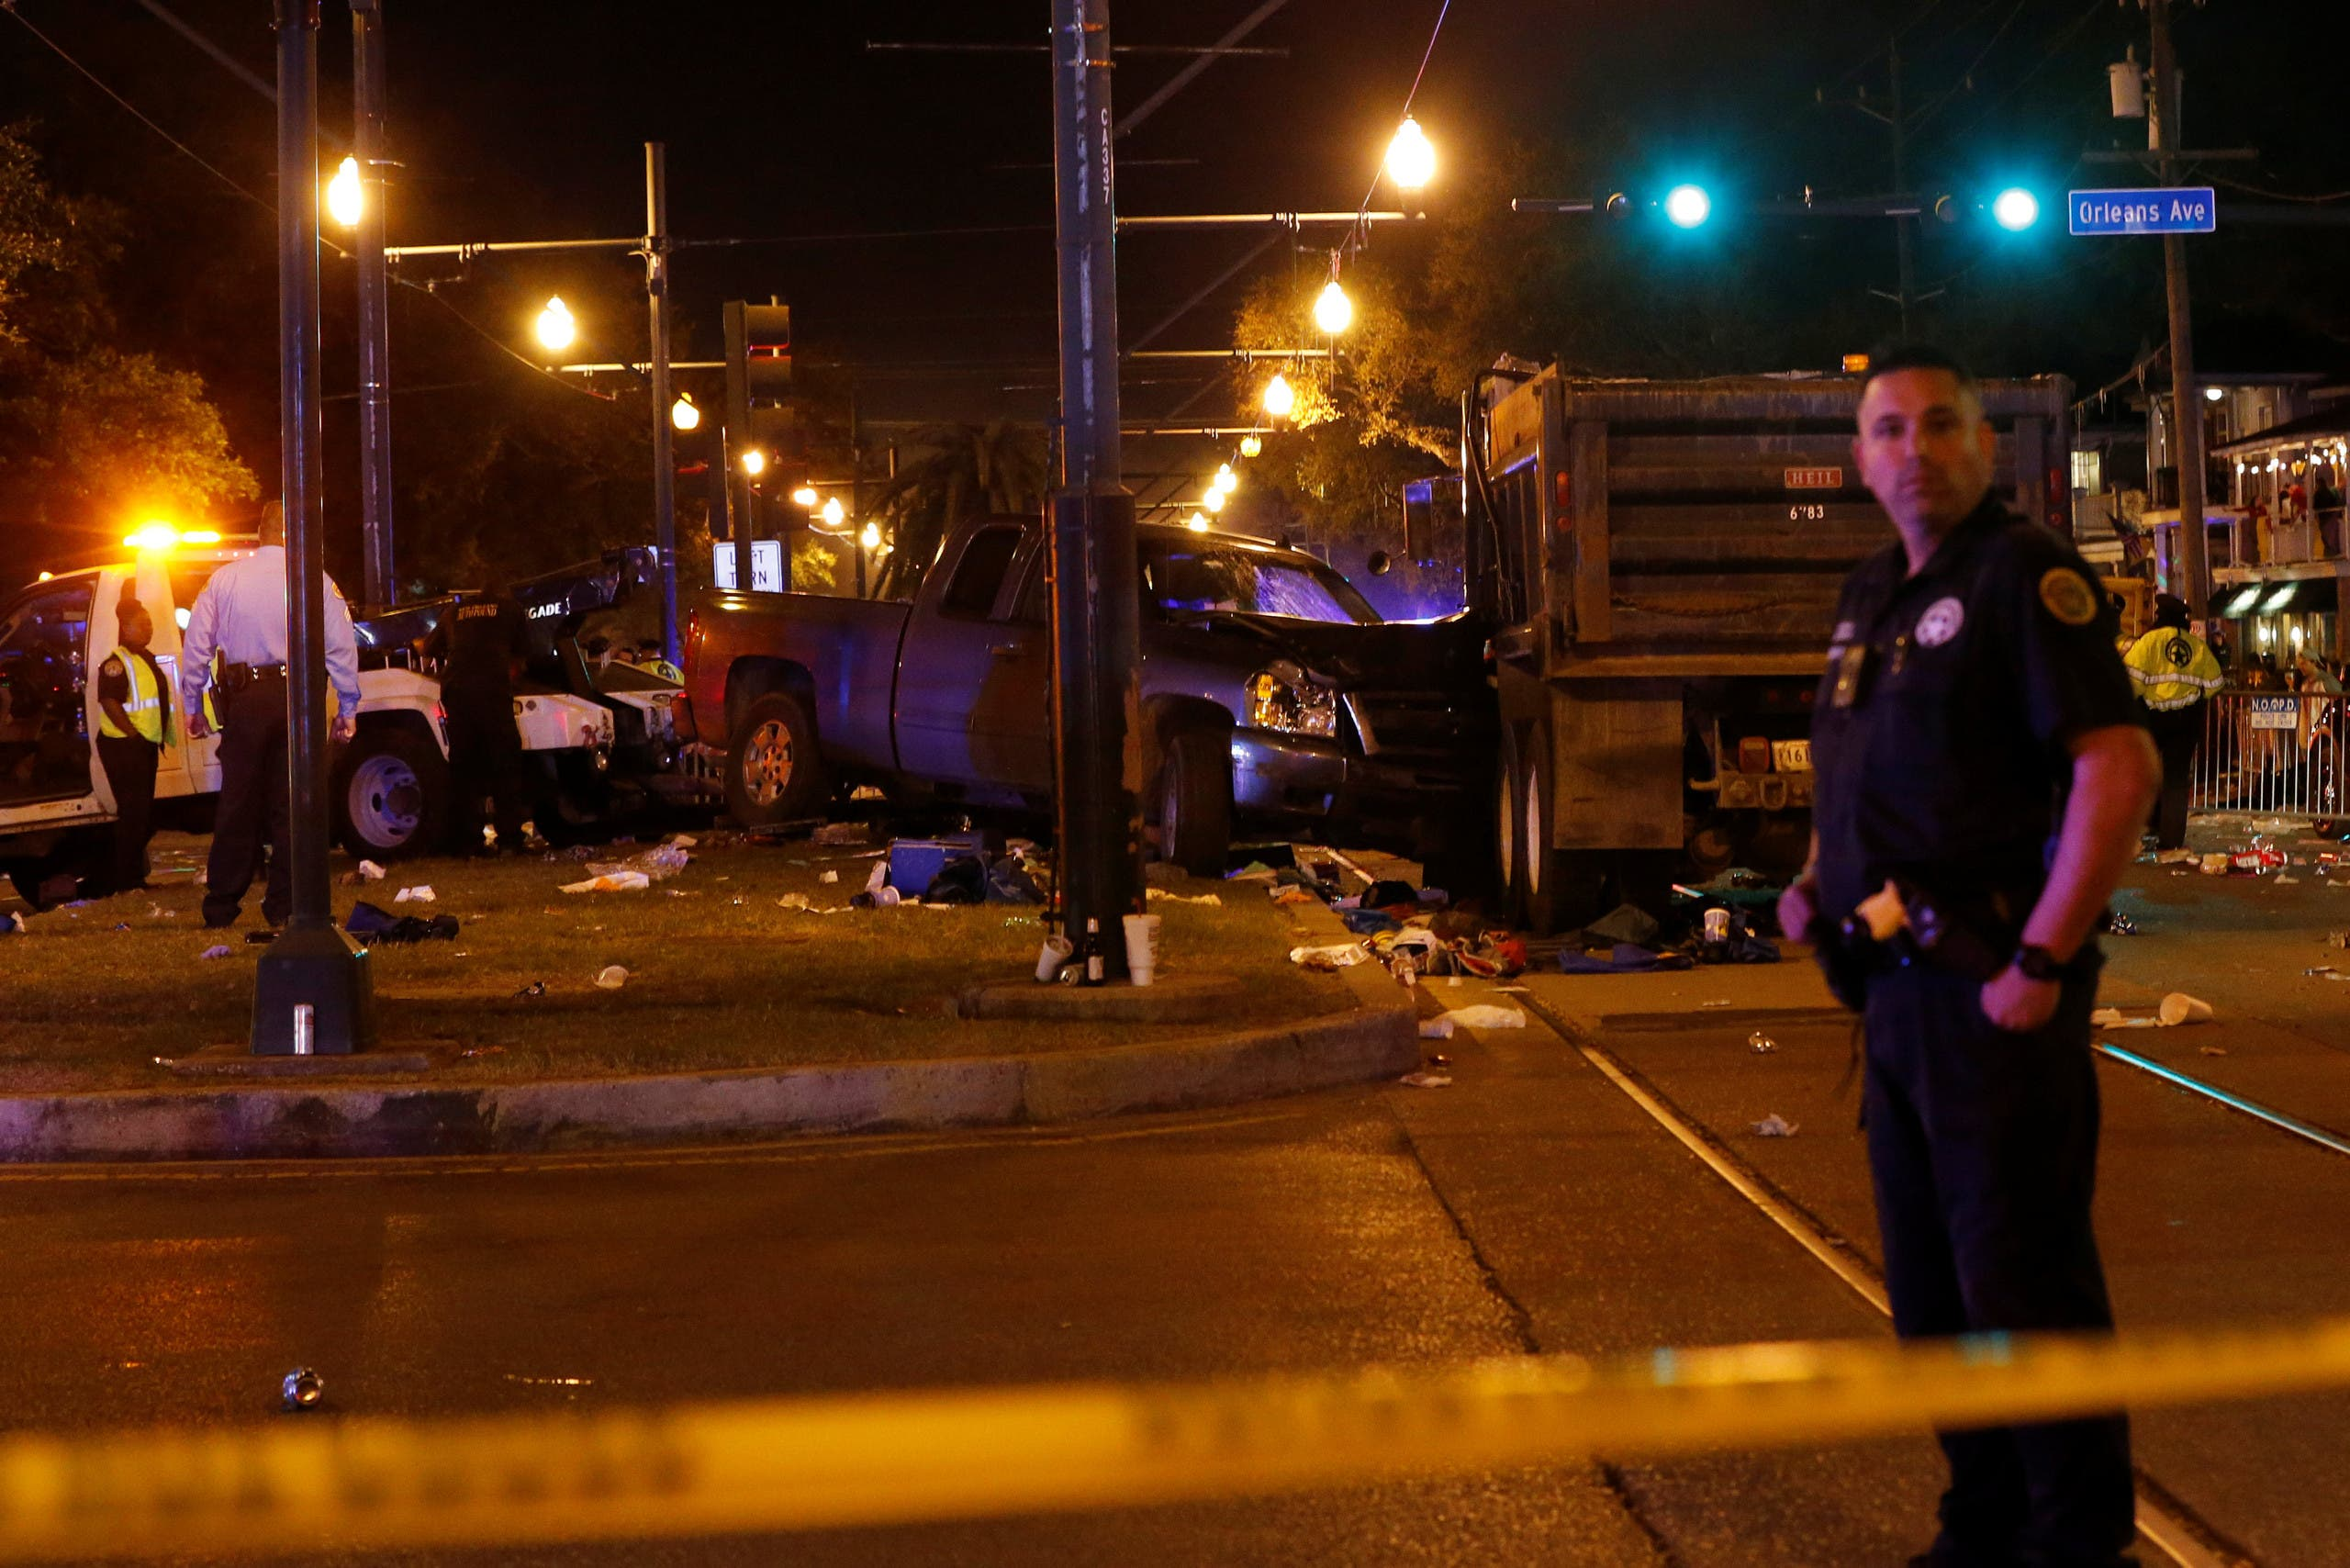 A vehicle is seen crashed along the Endymion parade route at Orleans and Carollton during Mardi Gras in New Orleans, Louisiana U.S., February 25, 2017